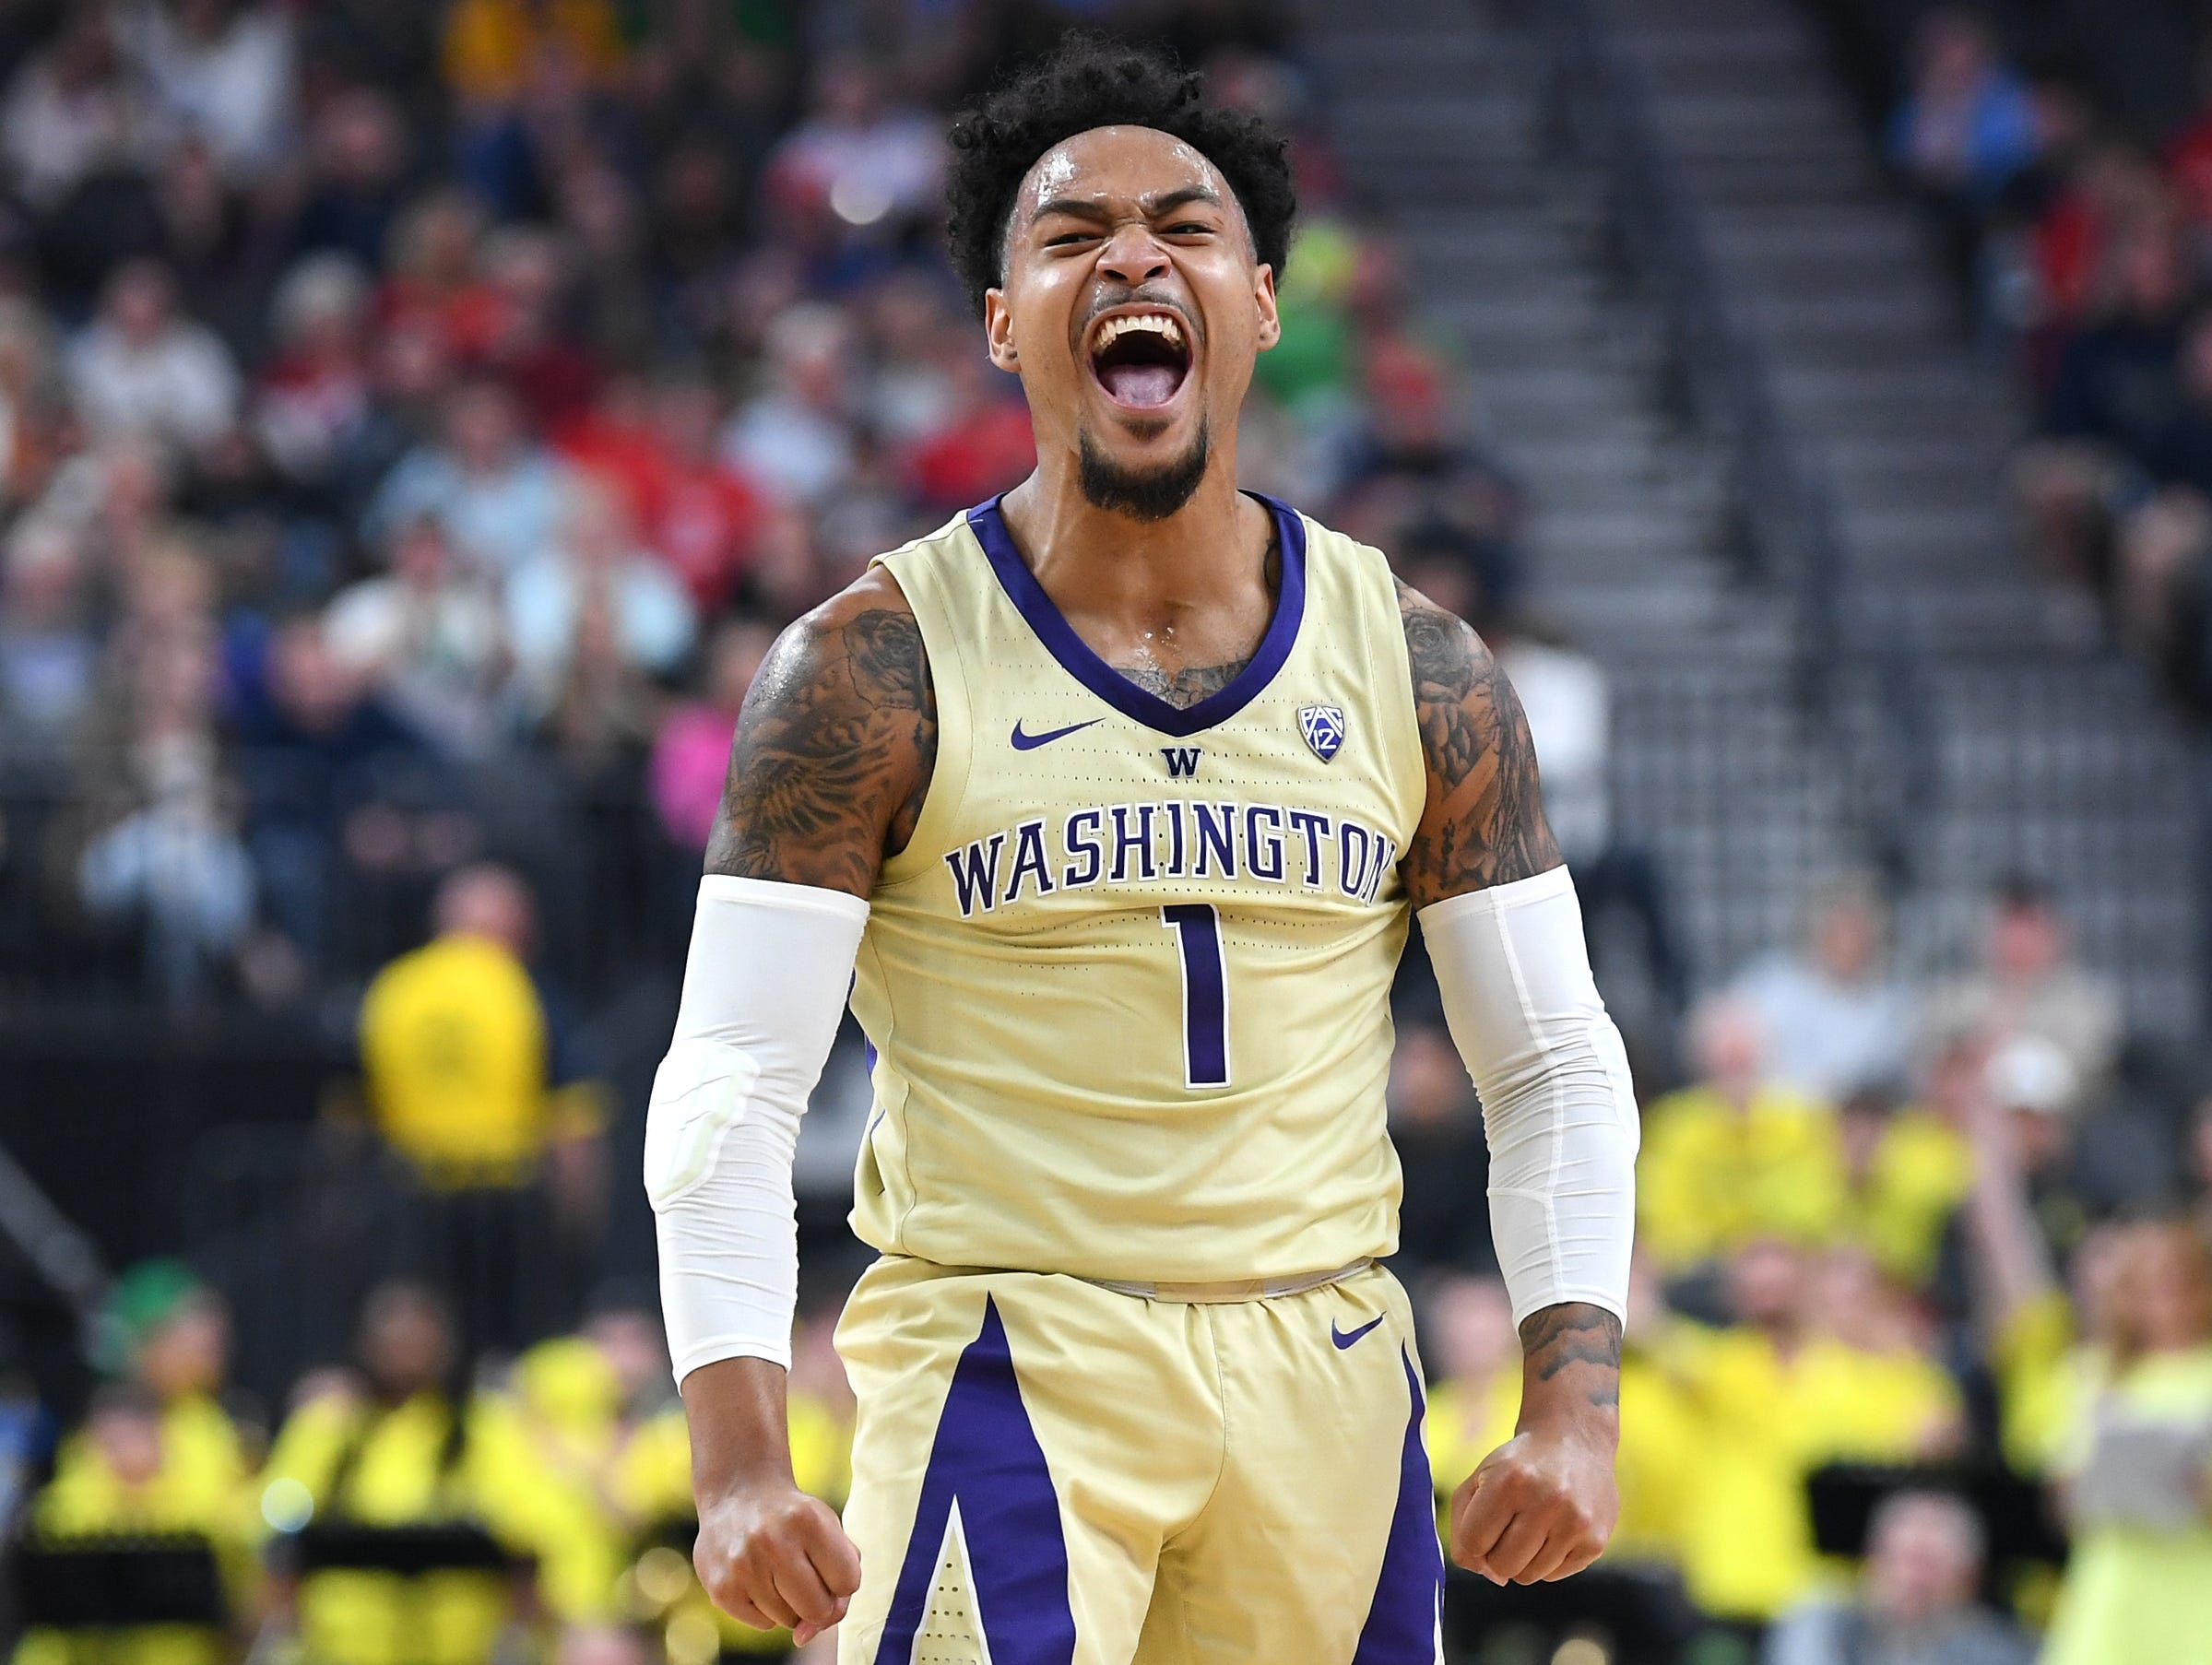 Washington (26-8), No. 9 seed in Midwest, at-large bid out of the Pac-12 Conference